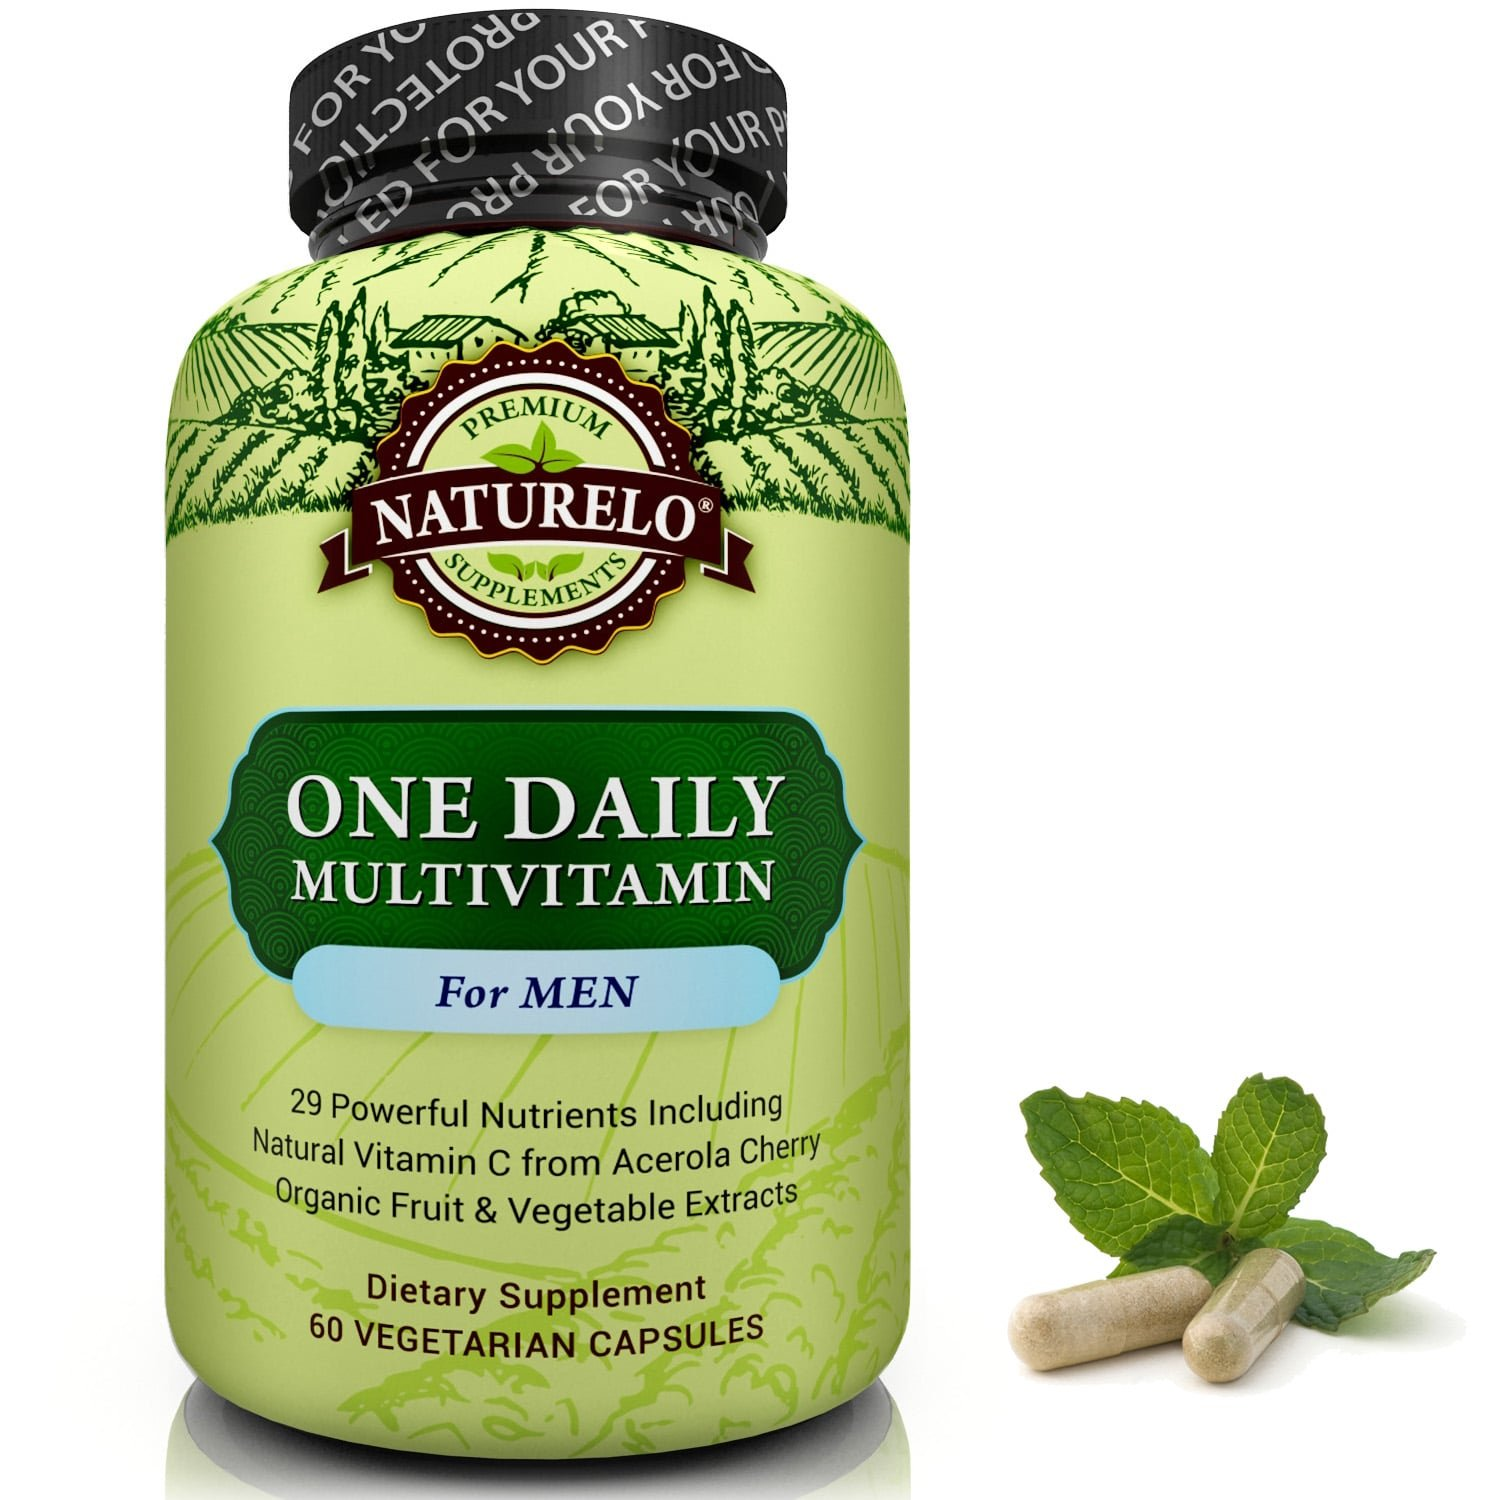 Iron Free Whole Food Multivitamin